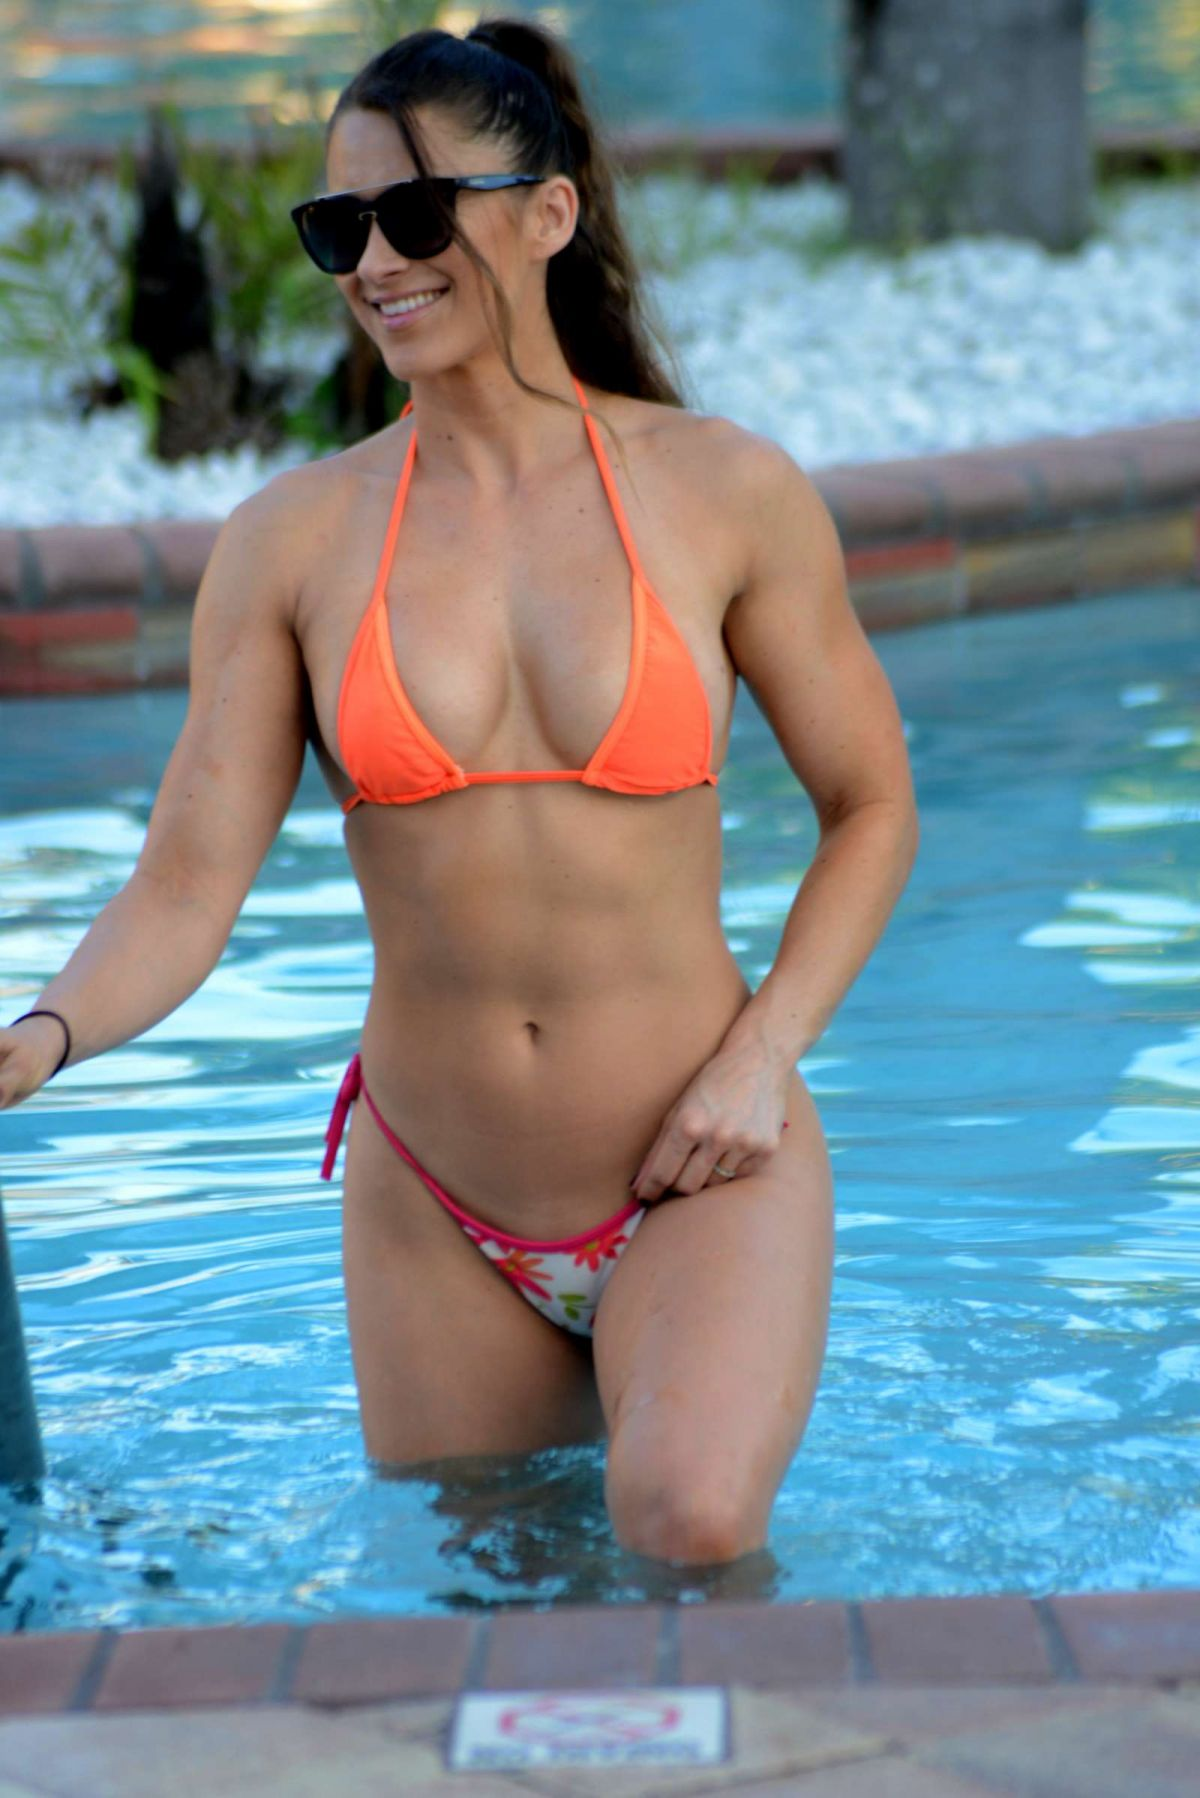 Anais Zanotti anais zanotti and nicole cardia in bikinis at a pool in